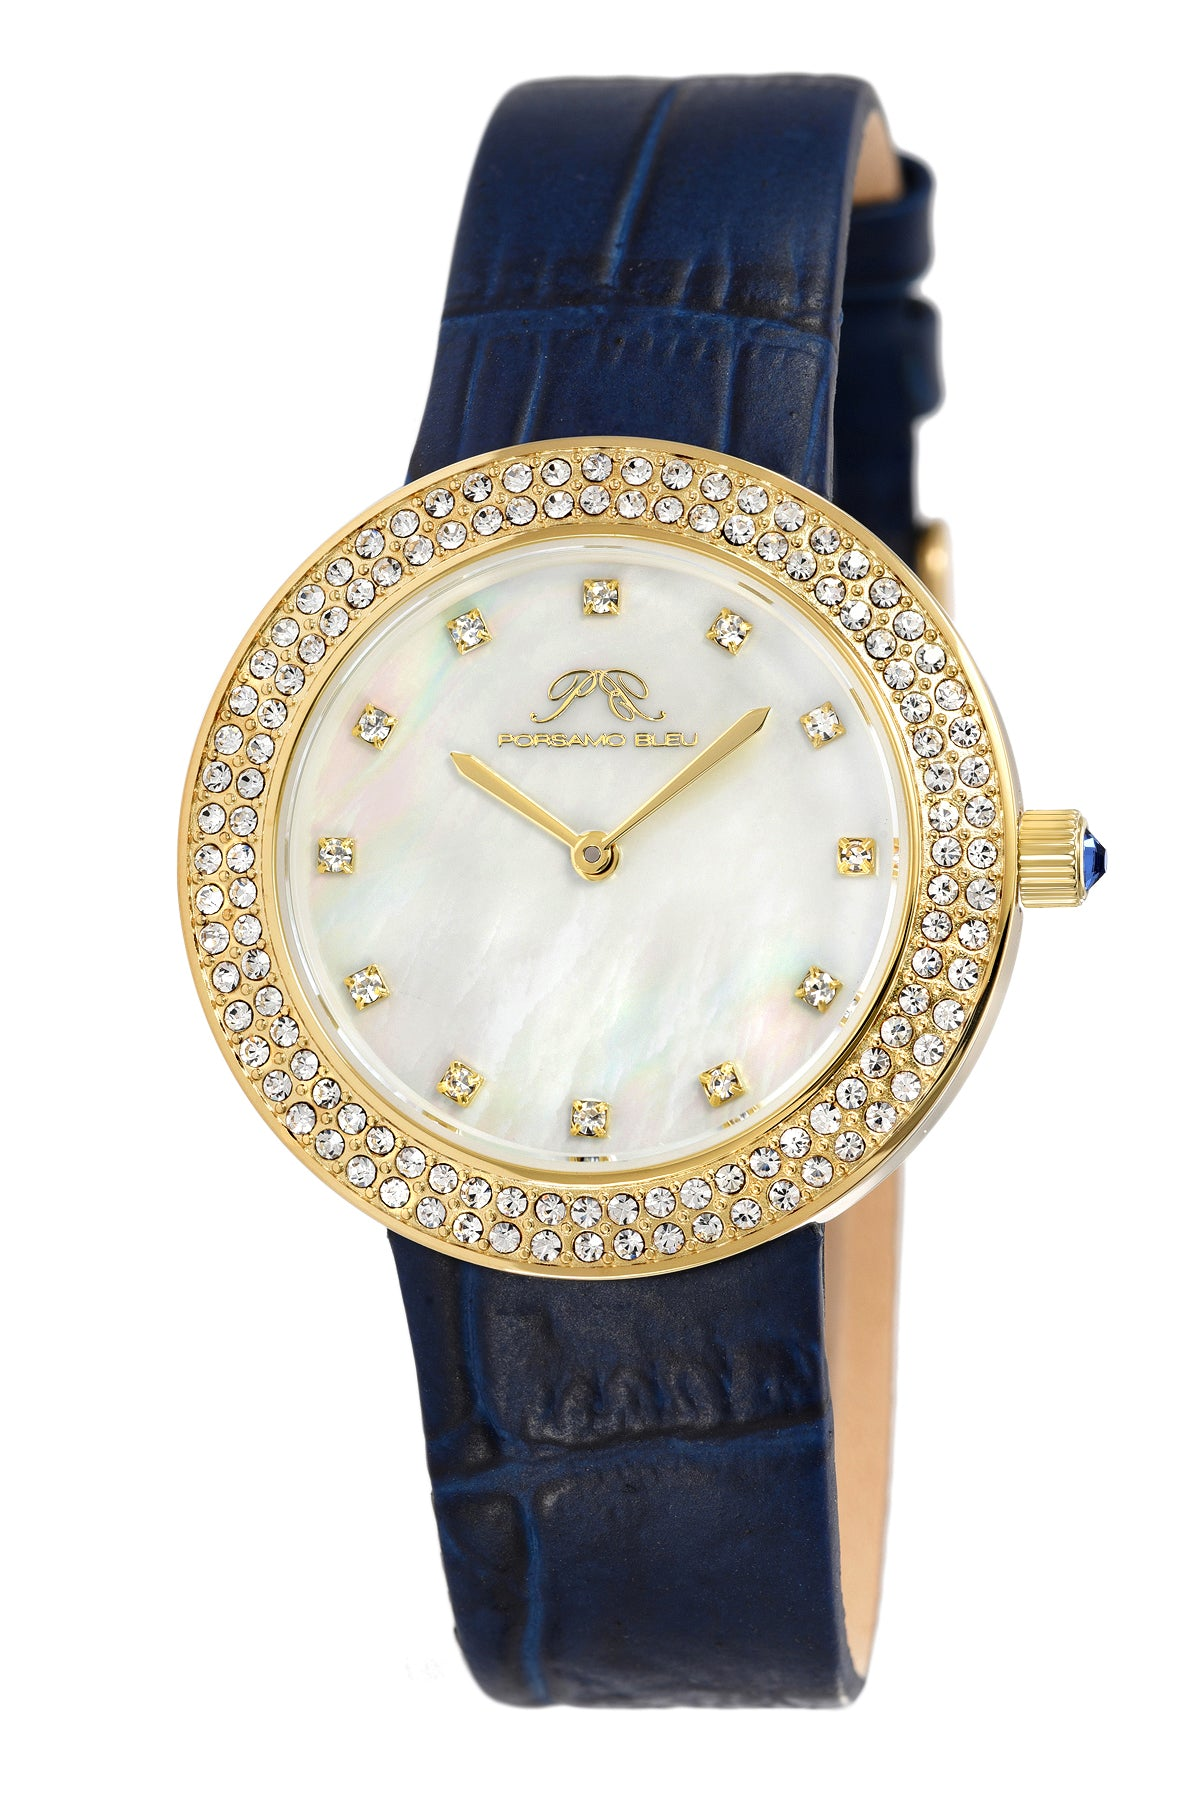 Porsamo Bleu Larissa luxury women's watch, genuine leather band, crystal inlaid bezel, white, gold, blue 892BLAL